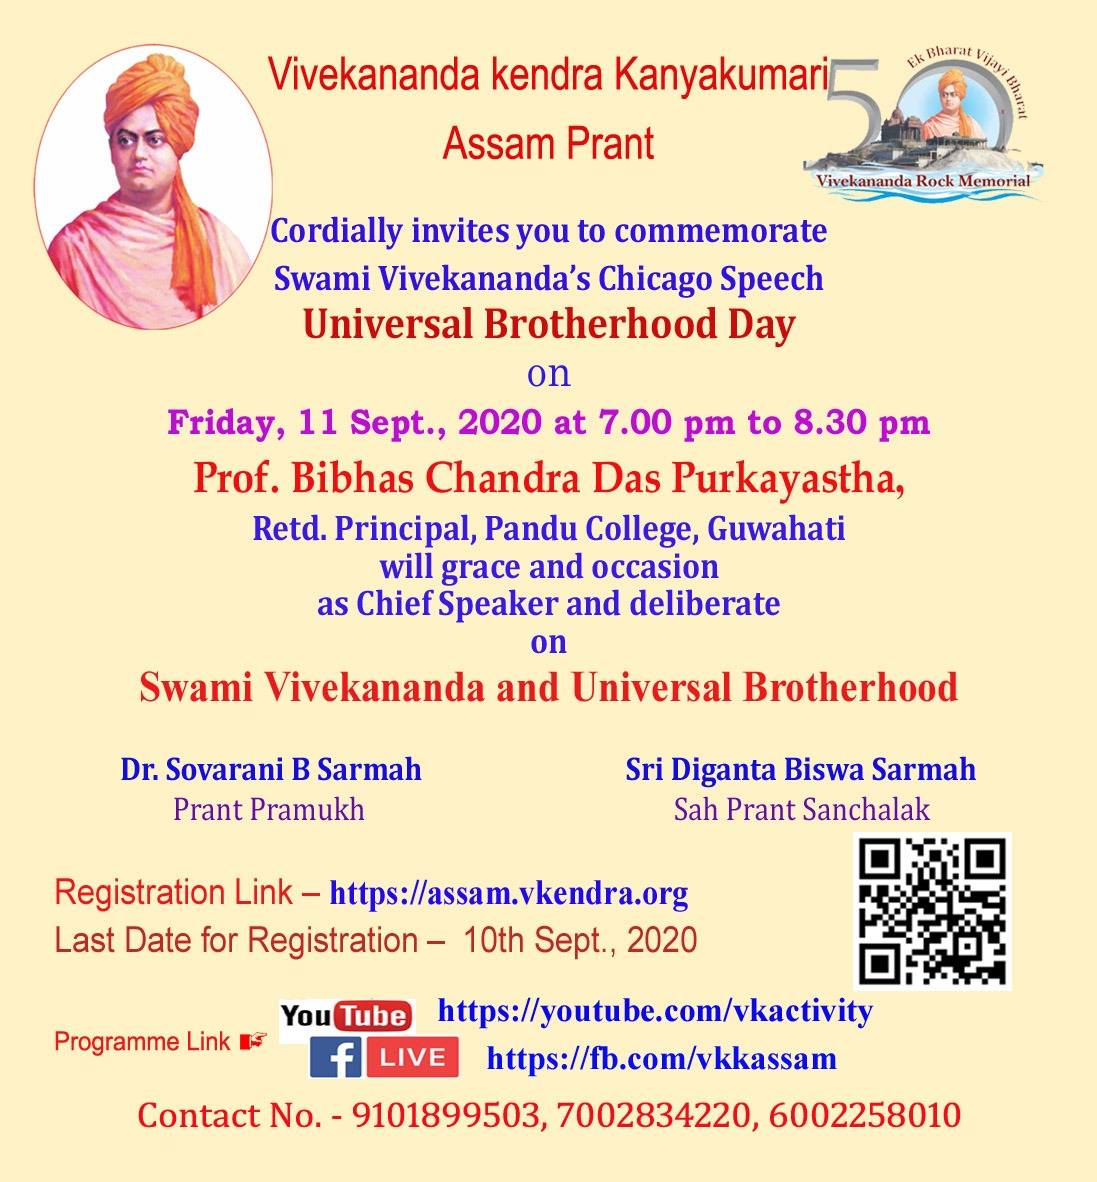 Swami Vivekananda and Universal Brotherhood